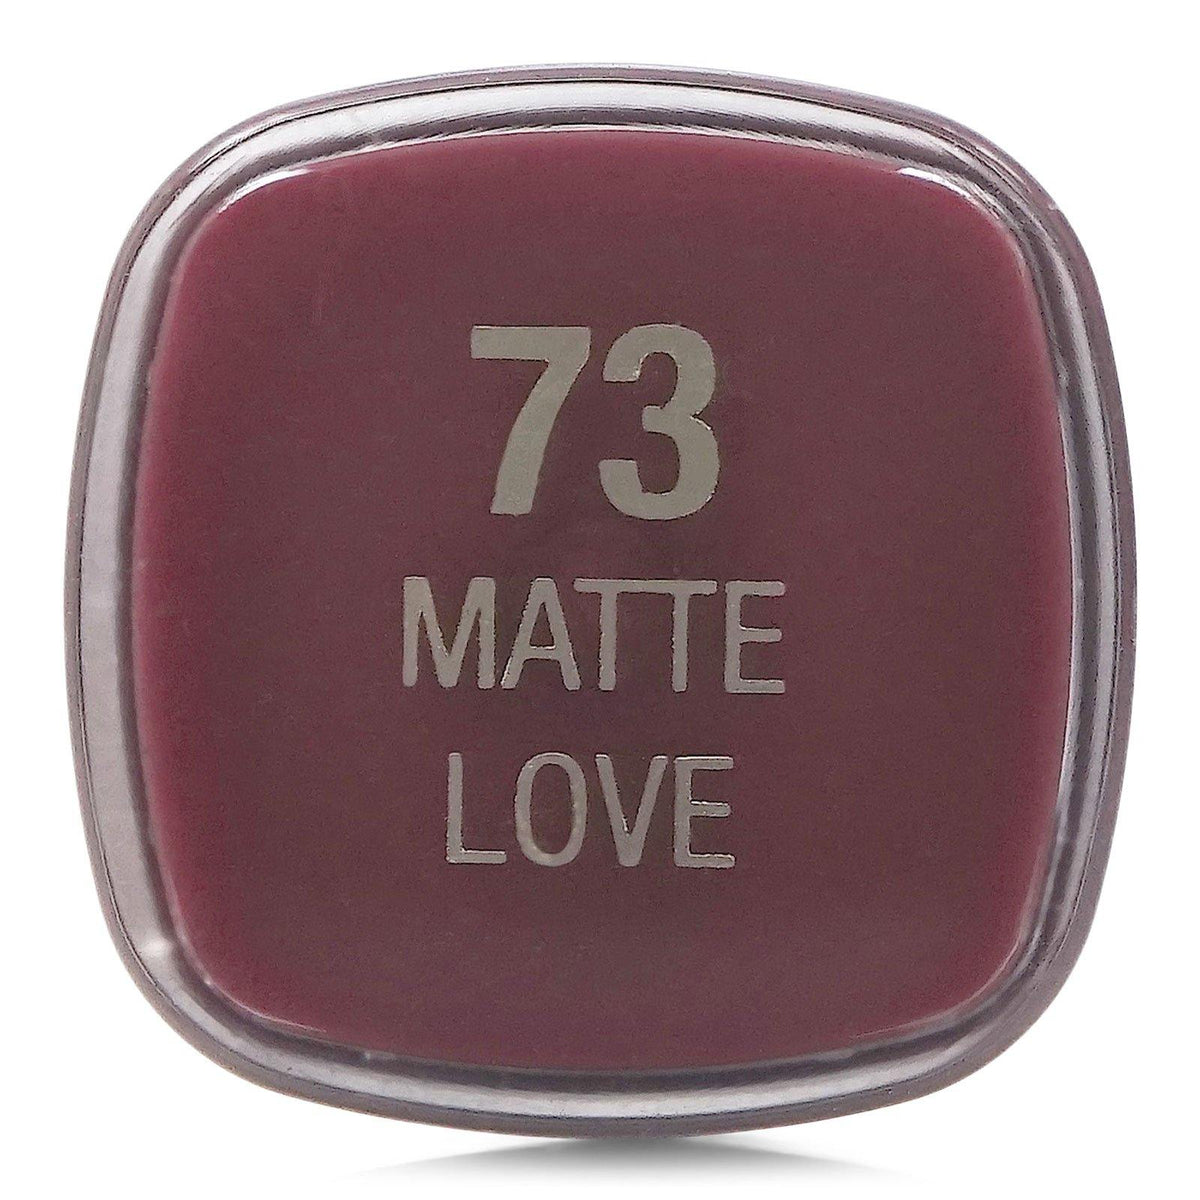 MILANI MATTE COLOR STATEMENT LIPSTICK- LOVE (24/cs)